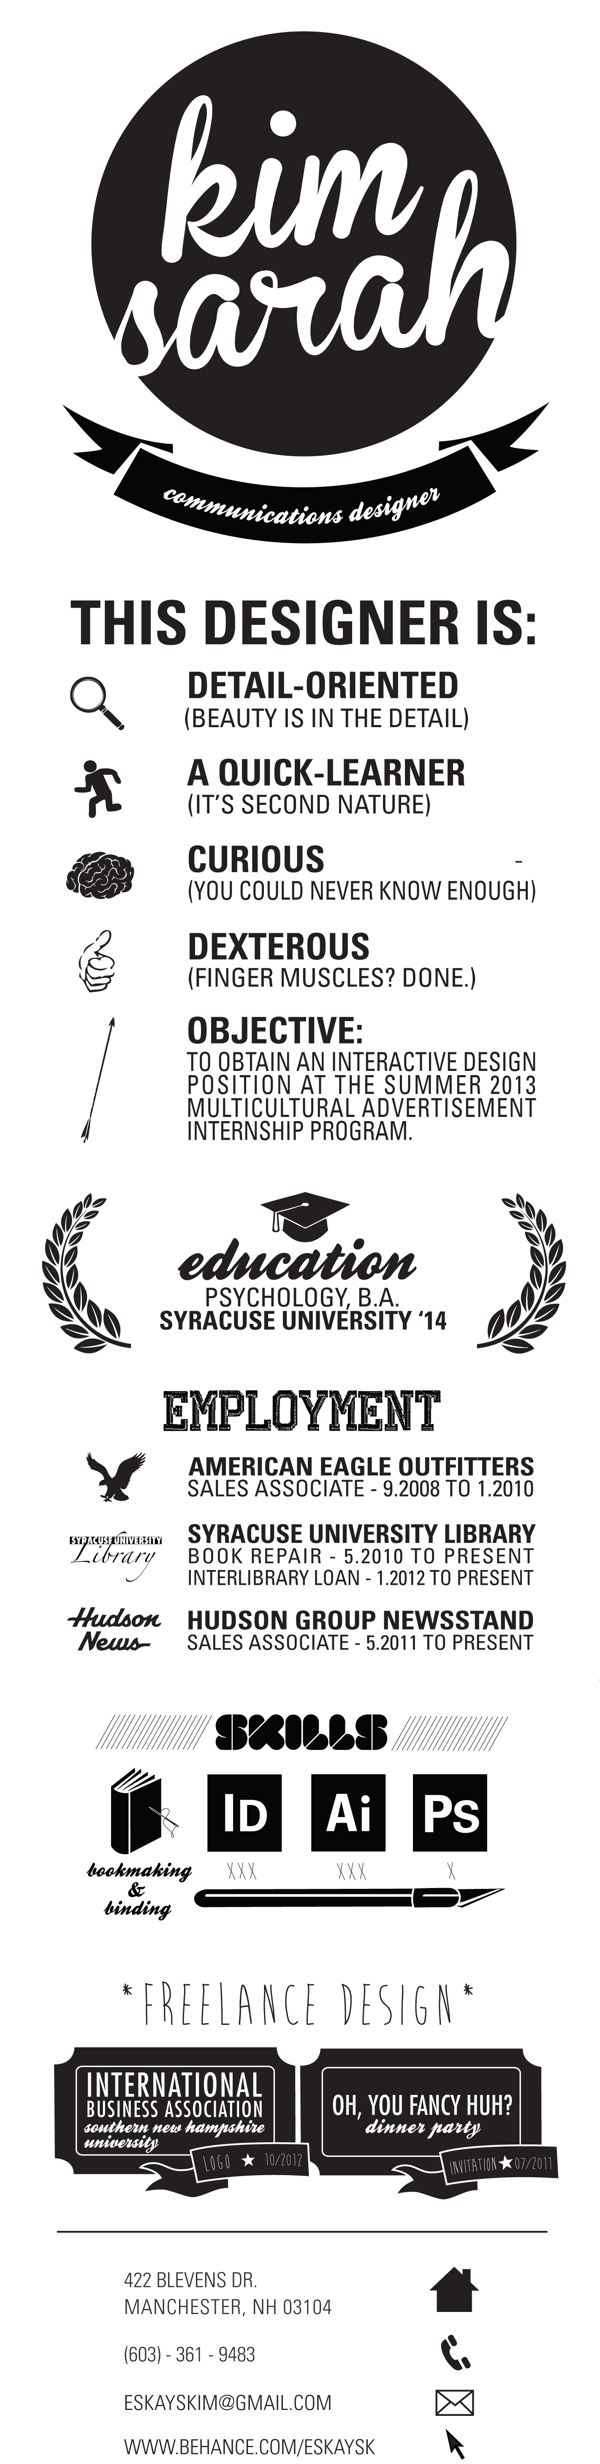 Opposenewapstandardsus  Remarkable  Resume Ideas On Pinterest  Resume Resume Templates And  With Gorgeous  Resume Ideas On Pinterest  Resume Resume Templates And Resume Styles With Divine Onet Online Resume Also Activities For Resume In Addition Director Of Finance Resume And Functional Style Resume As Well As Resume For Server Job Additionally Actors Resume Example From Pinterestcom With Opposenewapstandardsus  Gorgeous  Resume Ideas On Pinterest  Resume Resume Templates And  With Divine  Resume Ideas On Pinterest  Resume Resume Templates And Resume Styles And Remarkable Onet Online Resume Also Activities For Resume In Addition Director Of Finance Resume From Pinterestcom